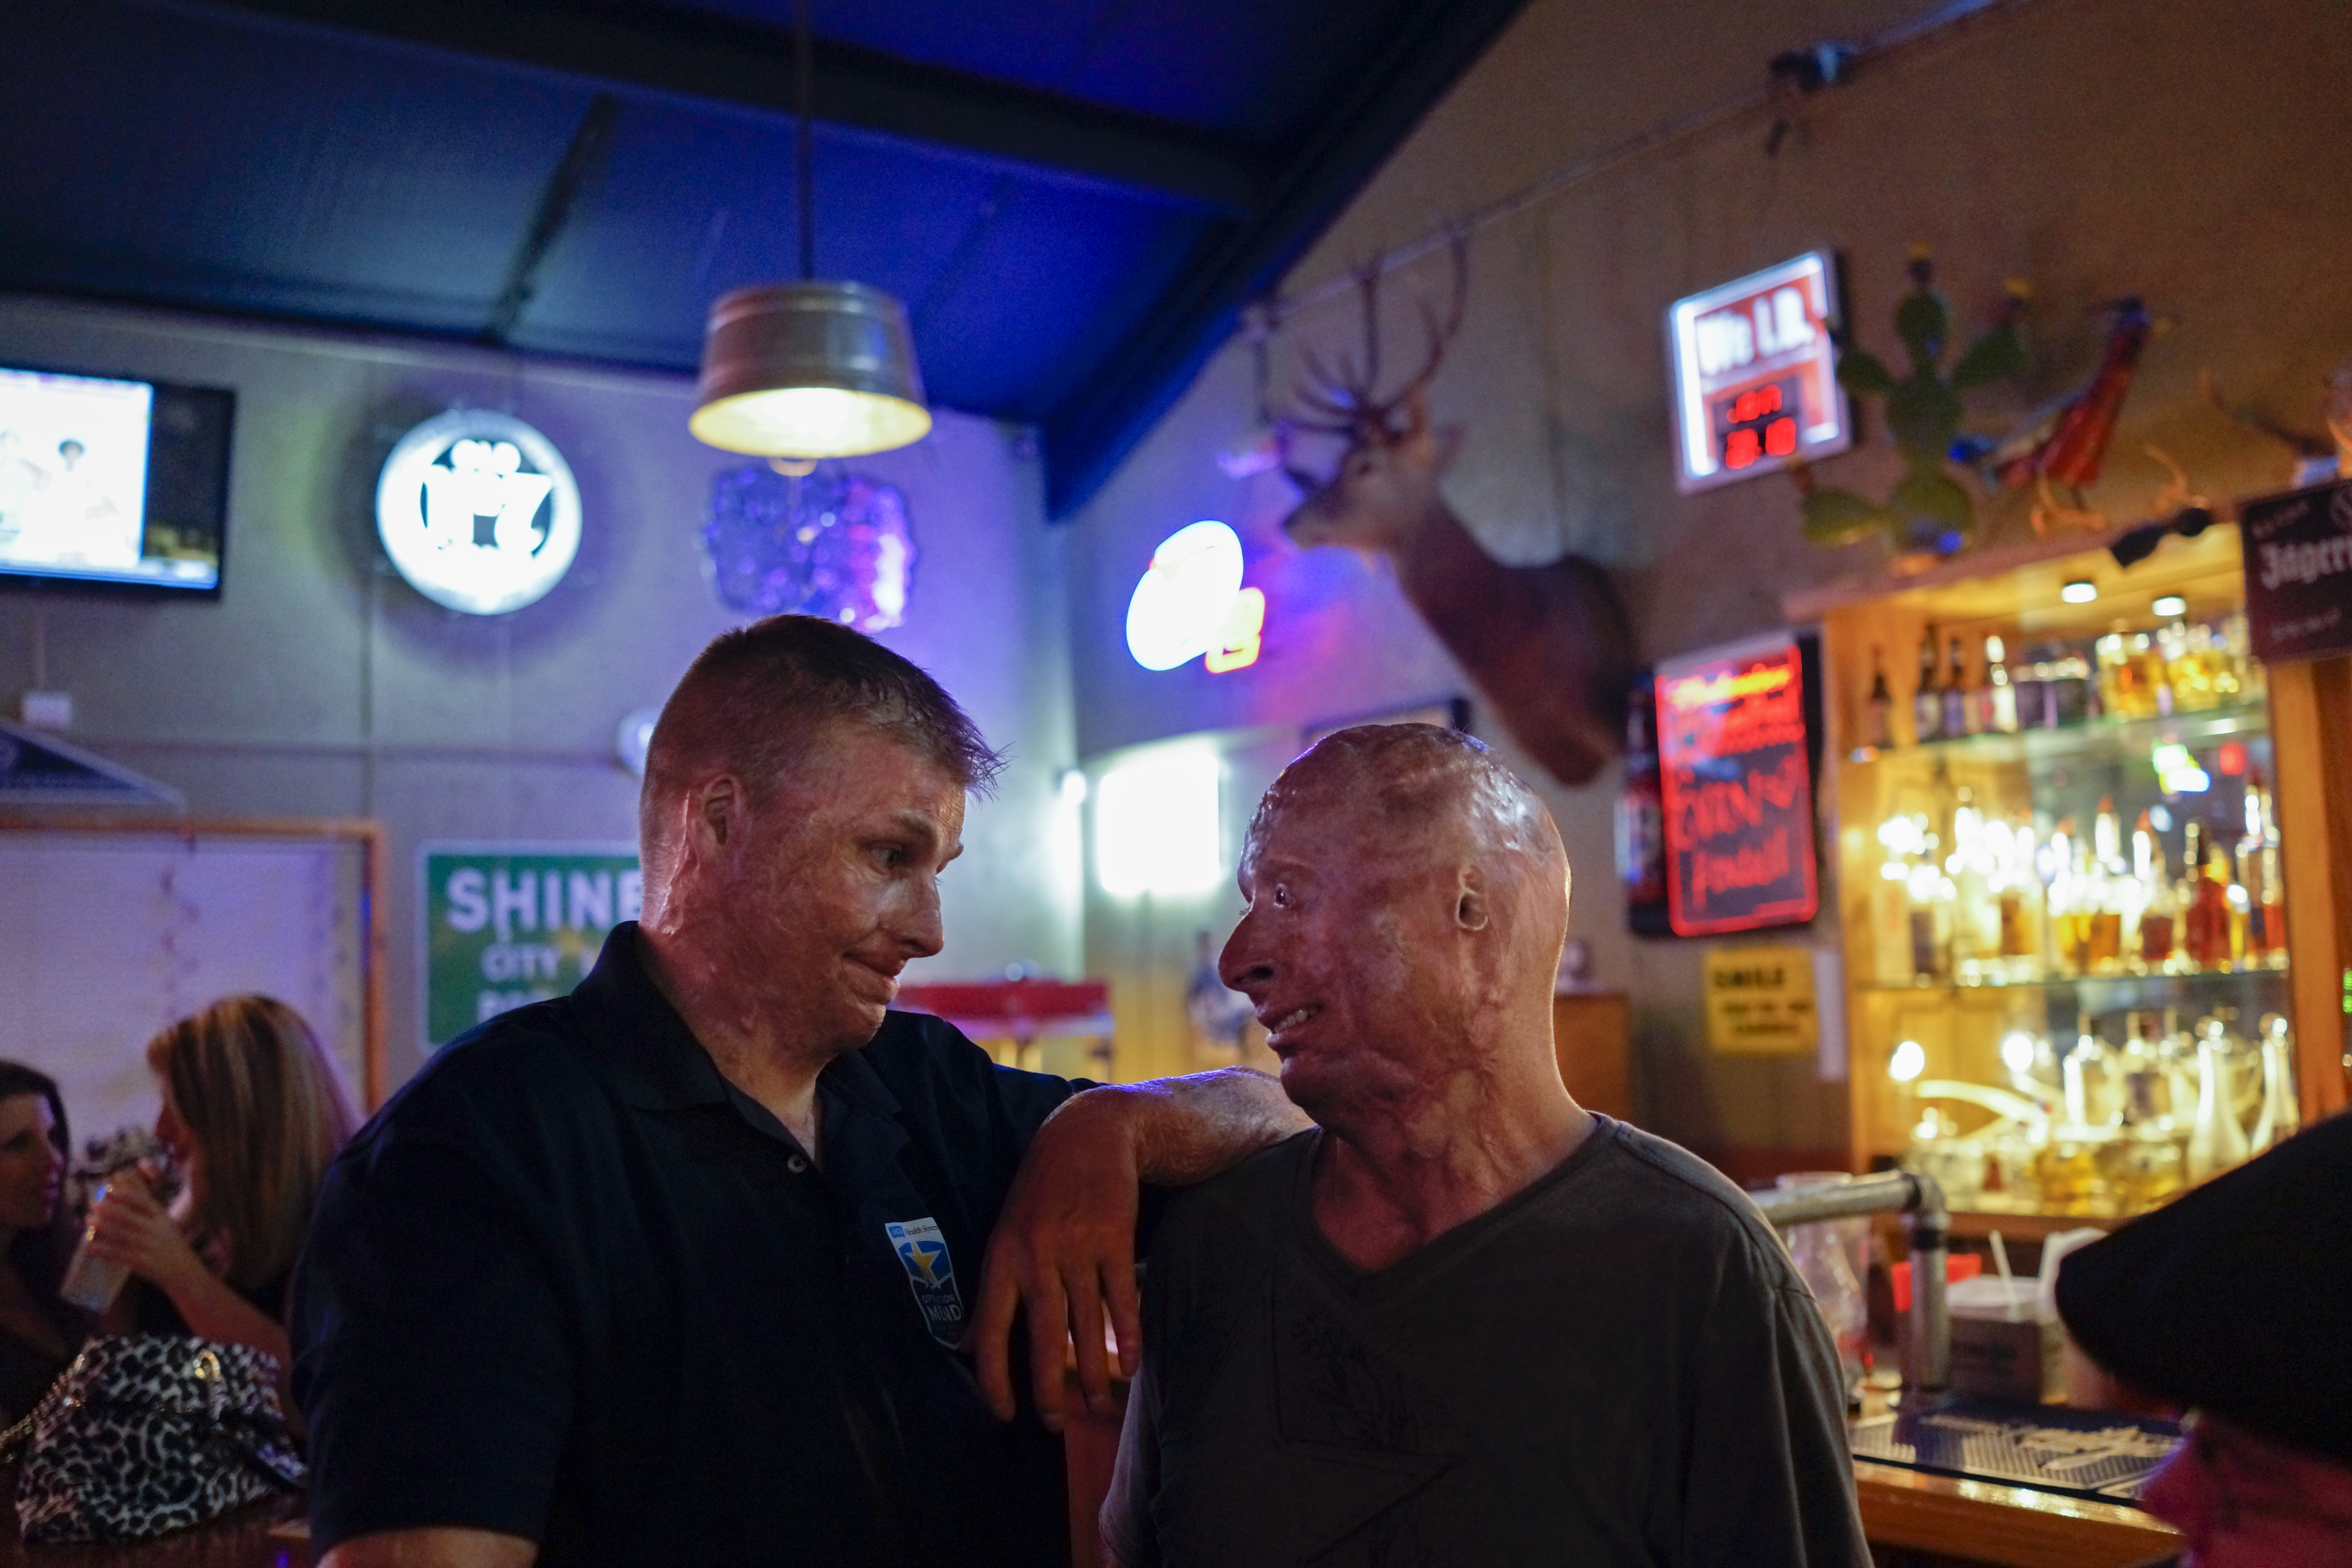 With a fellow burned service member at the Bracken Saloon after his weekly comedy routine. San Antonio, Texas, 2013.